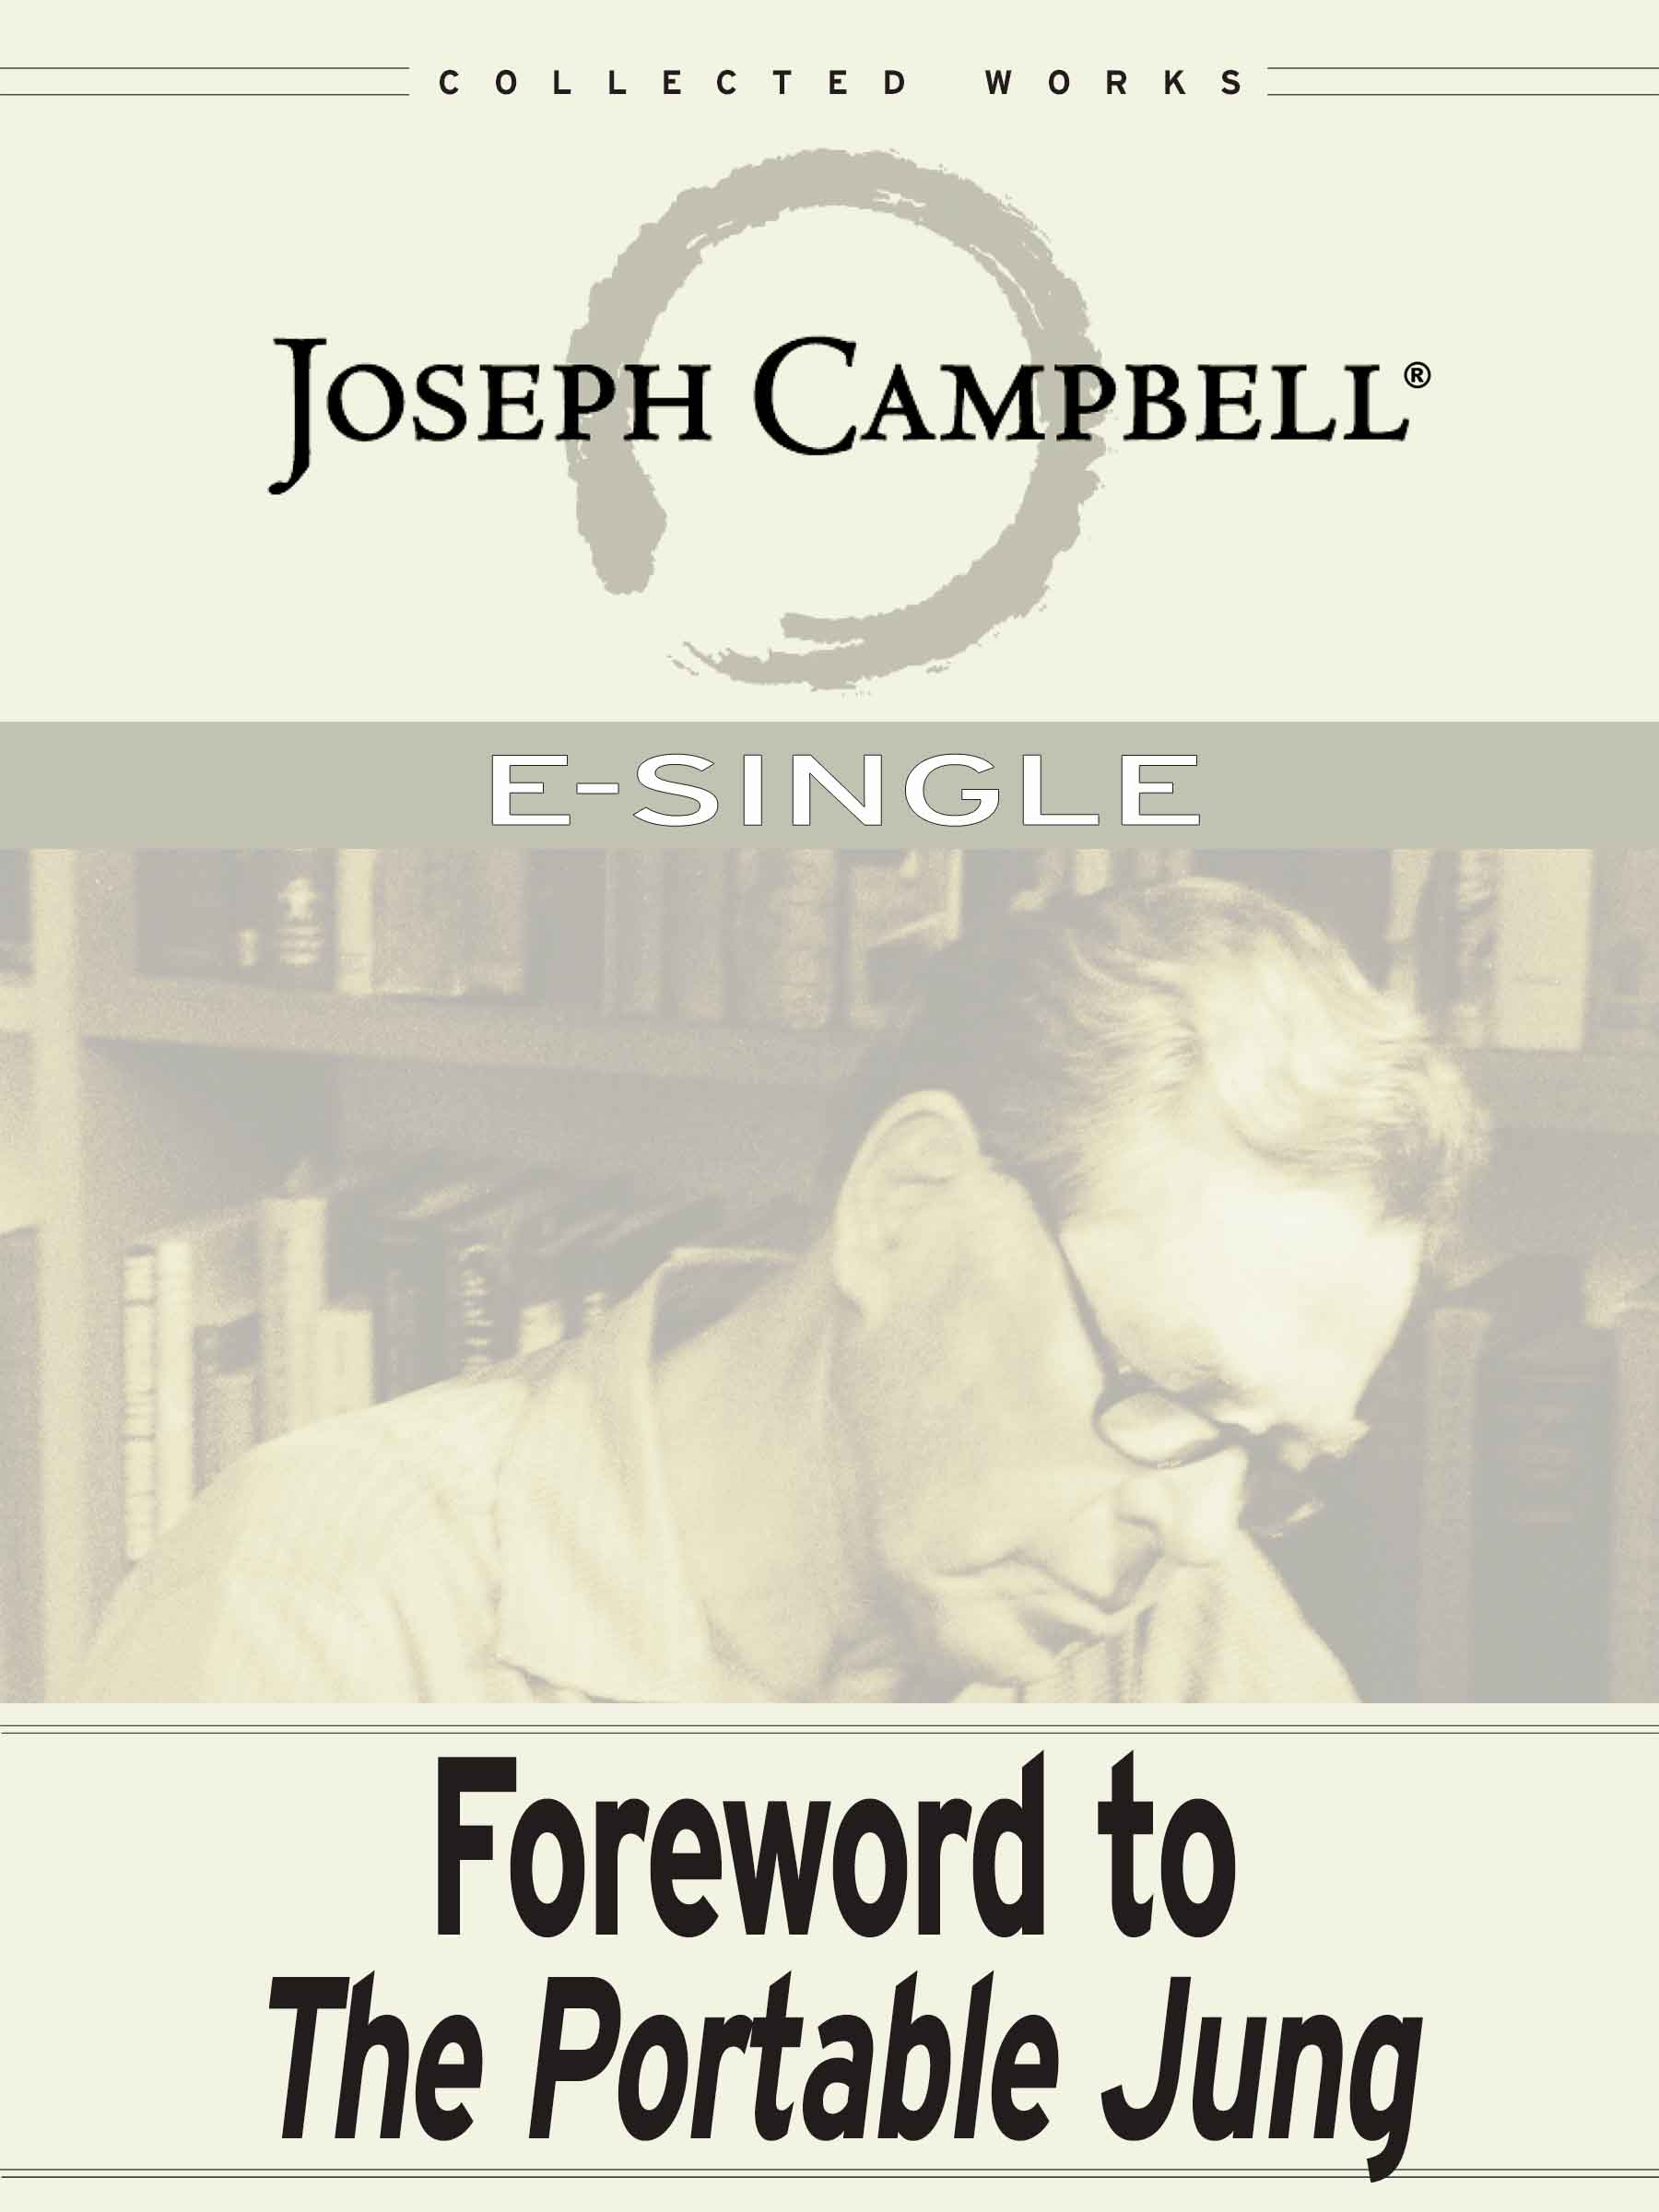 Foreword to The Portable Jung (Esingle)